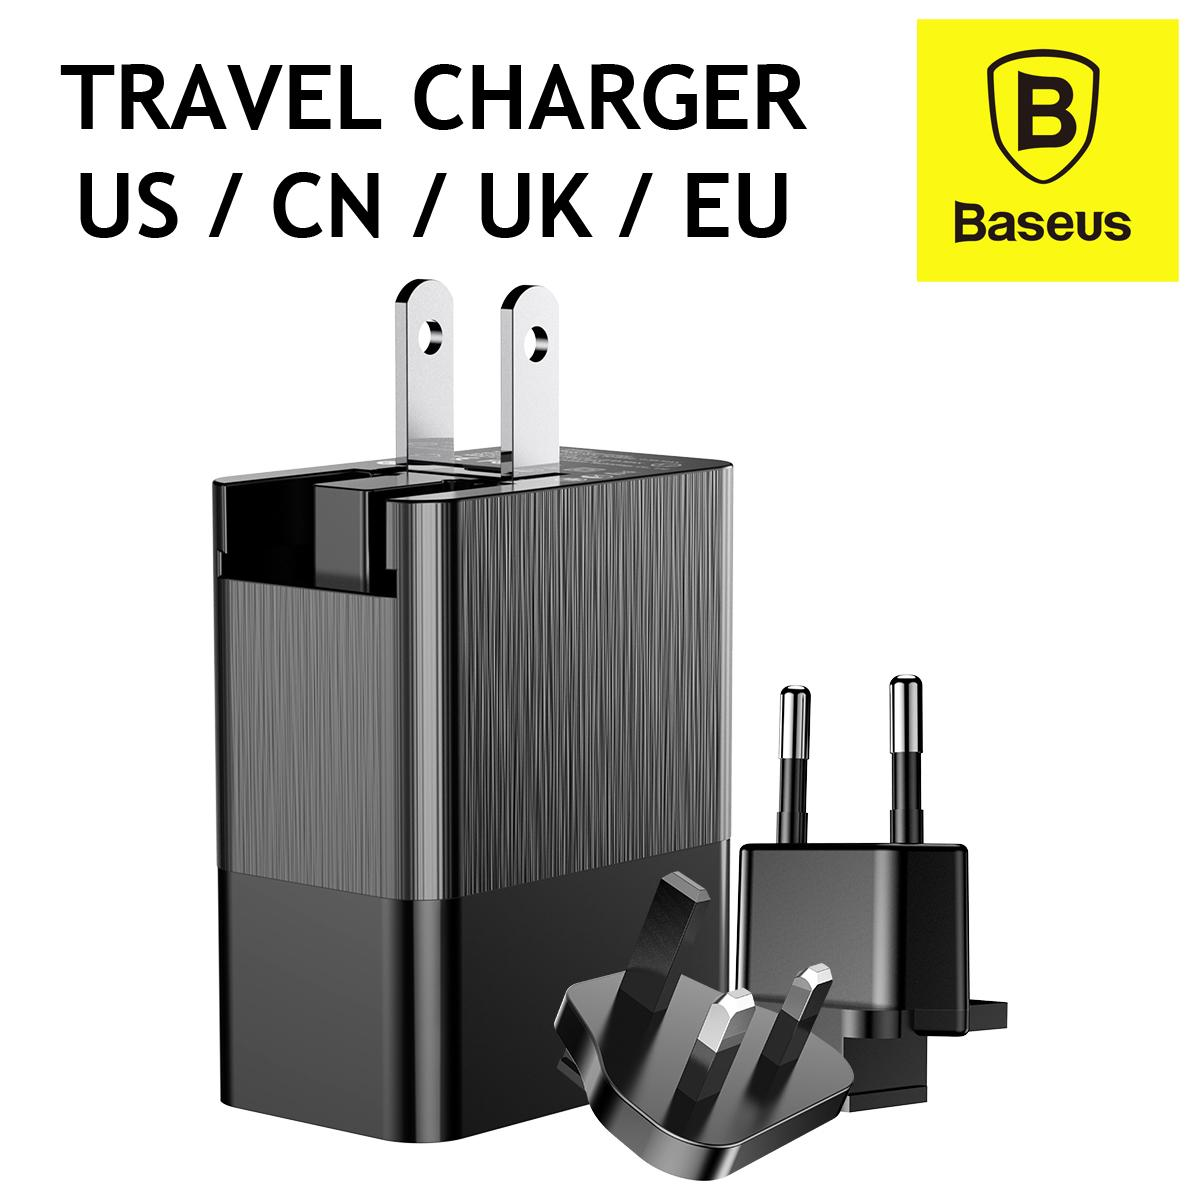 Baseus Duke Universal Travel Adapter Charger Multi Usb Travel Adaptor Wall Charger By Uniqhome.